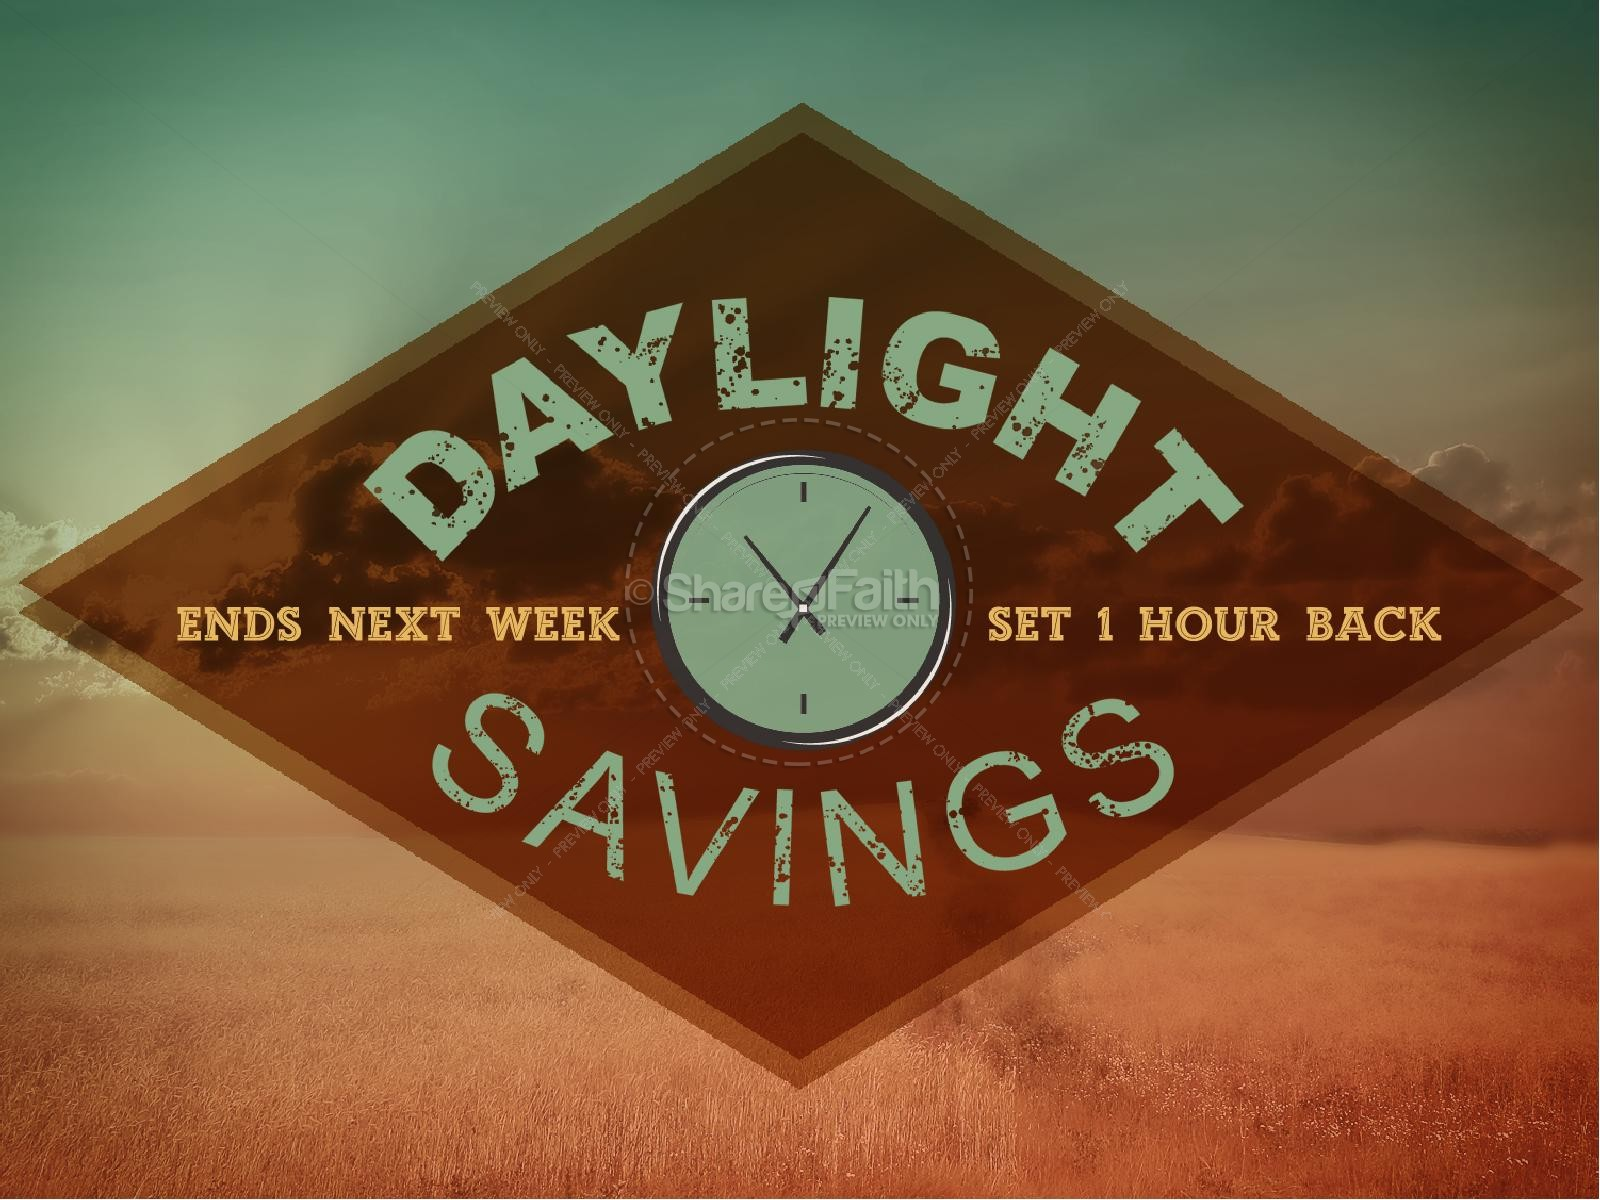 Daylight Savings Church Graphics